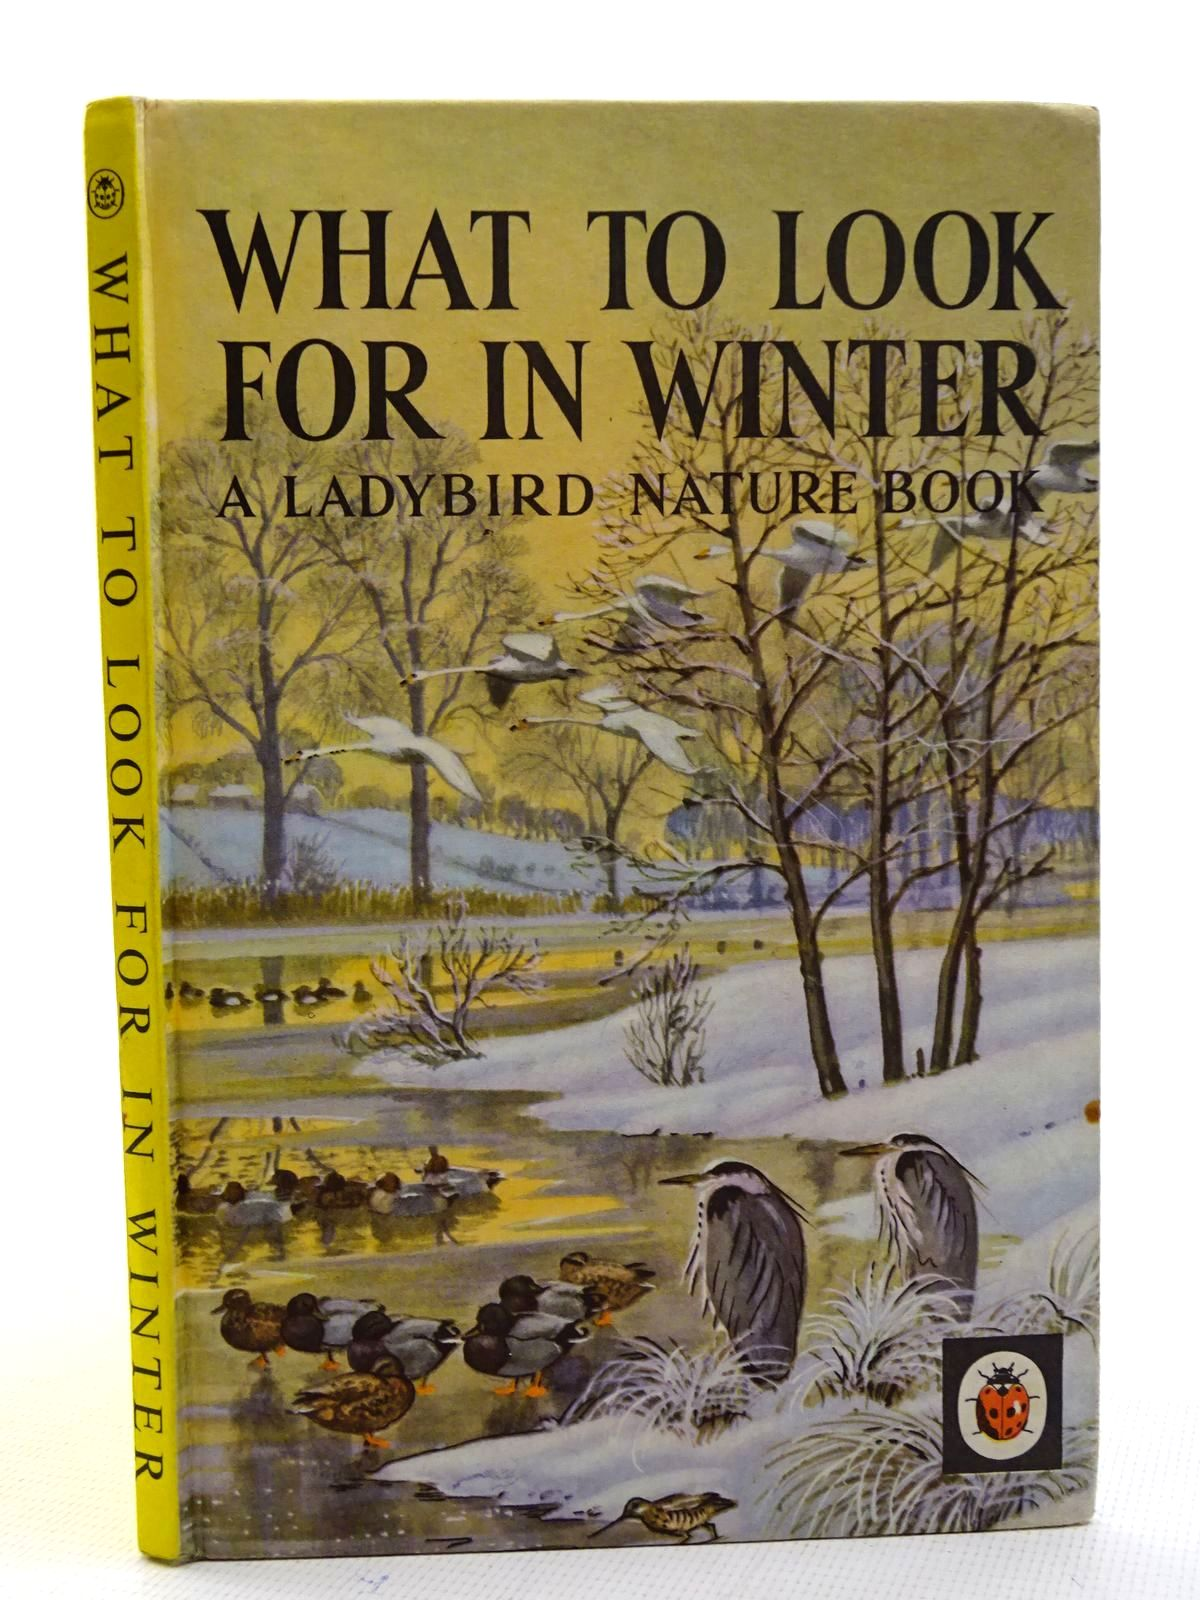 Photo of WHAT TO LOOK FOR IN WINTER written by Watson, E.L. Grant illustrated by Tunnicliffe, C.F. published by Wills & Hepworth Ltd. (STOCK CODE: 2125435)  for sale by Stella & Rose's Books